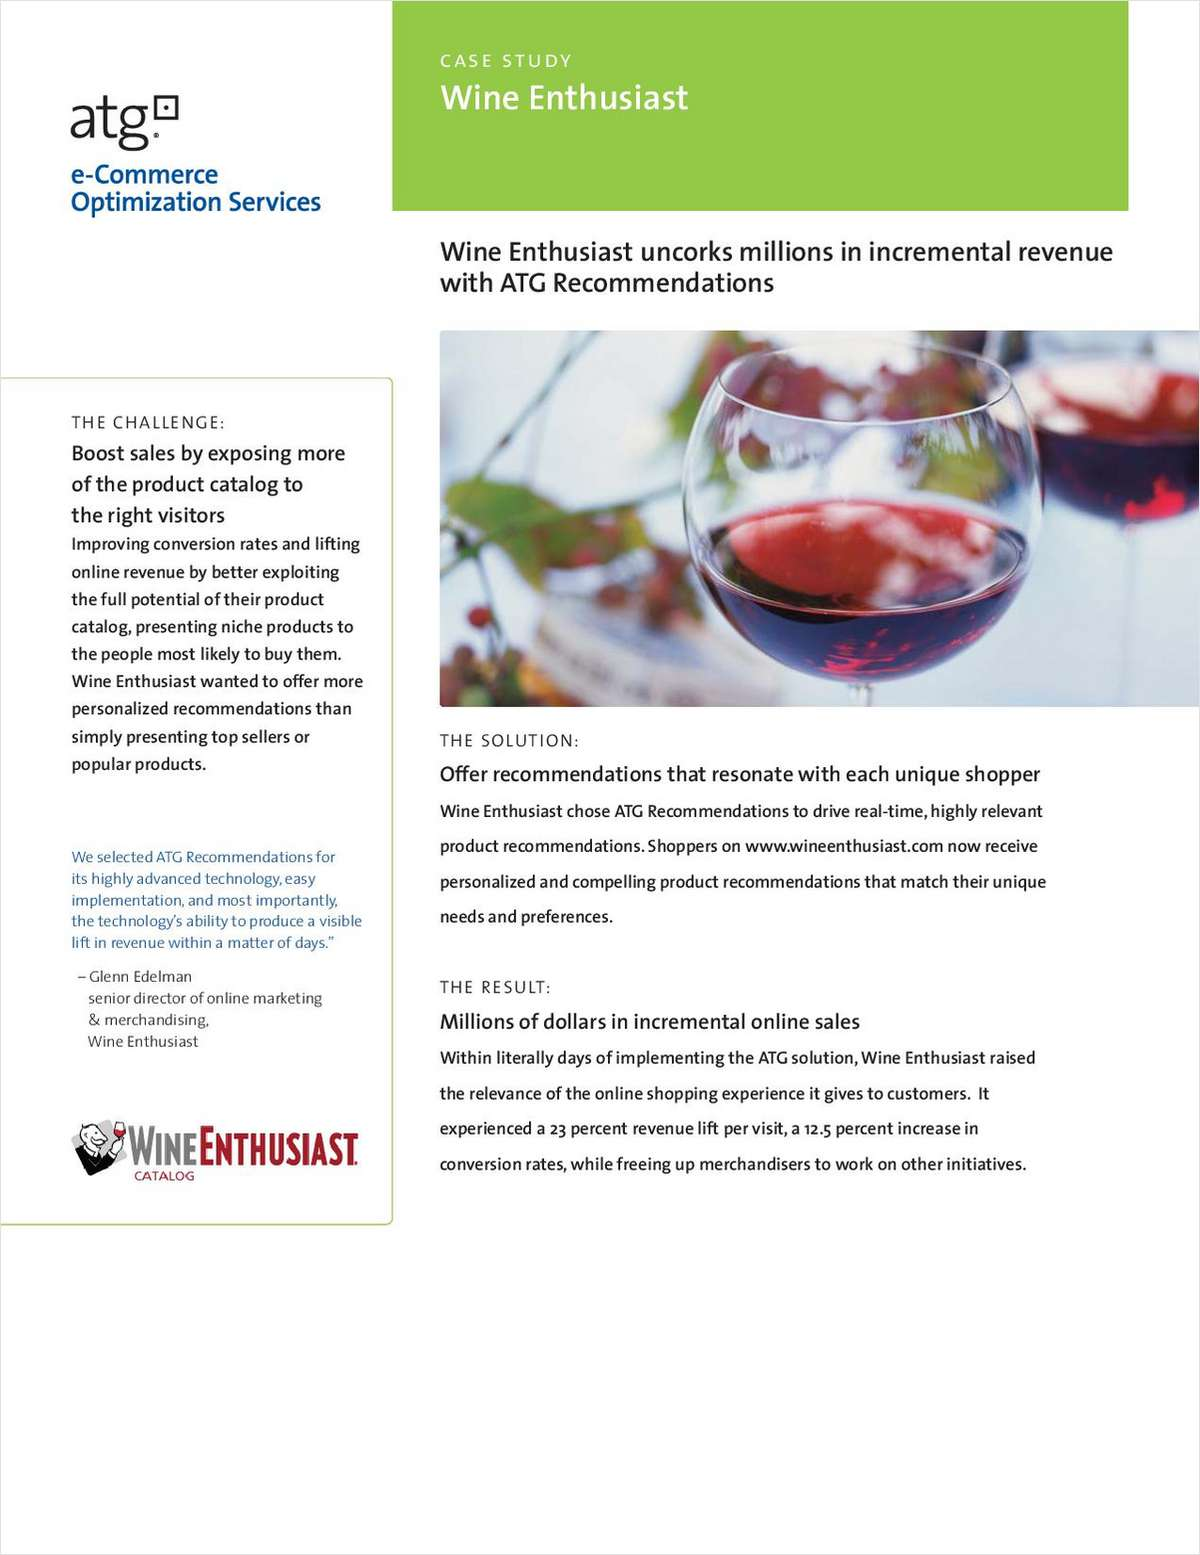 Case Study: Wine Enthusiast uncorks millions in incremental revenue with ATG Recommendations